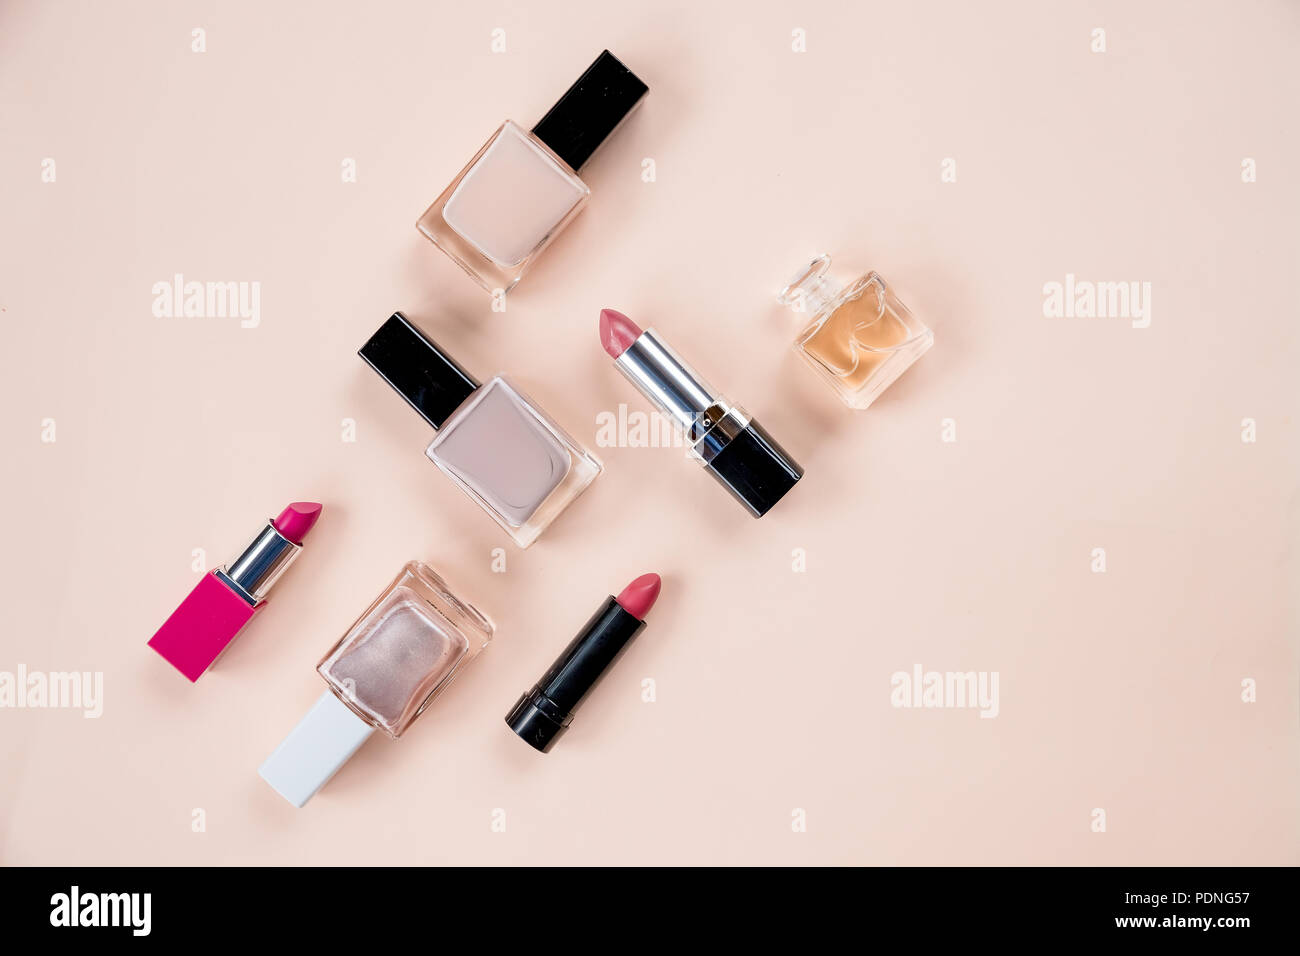 cosmetic set. Isolated on pastel background.Bottle of perfume and cosmetic products on color background.Decorative cosmetics and tools of professional makeup artist.Women's cosmetics. - Stock Image